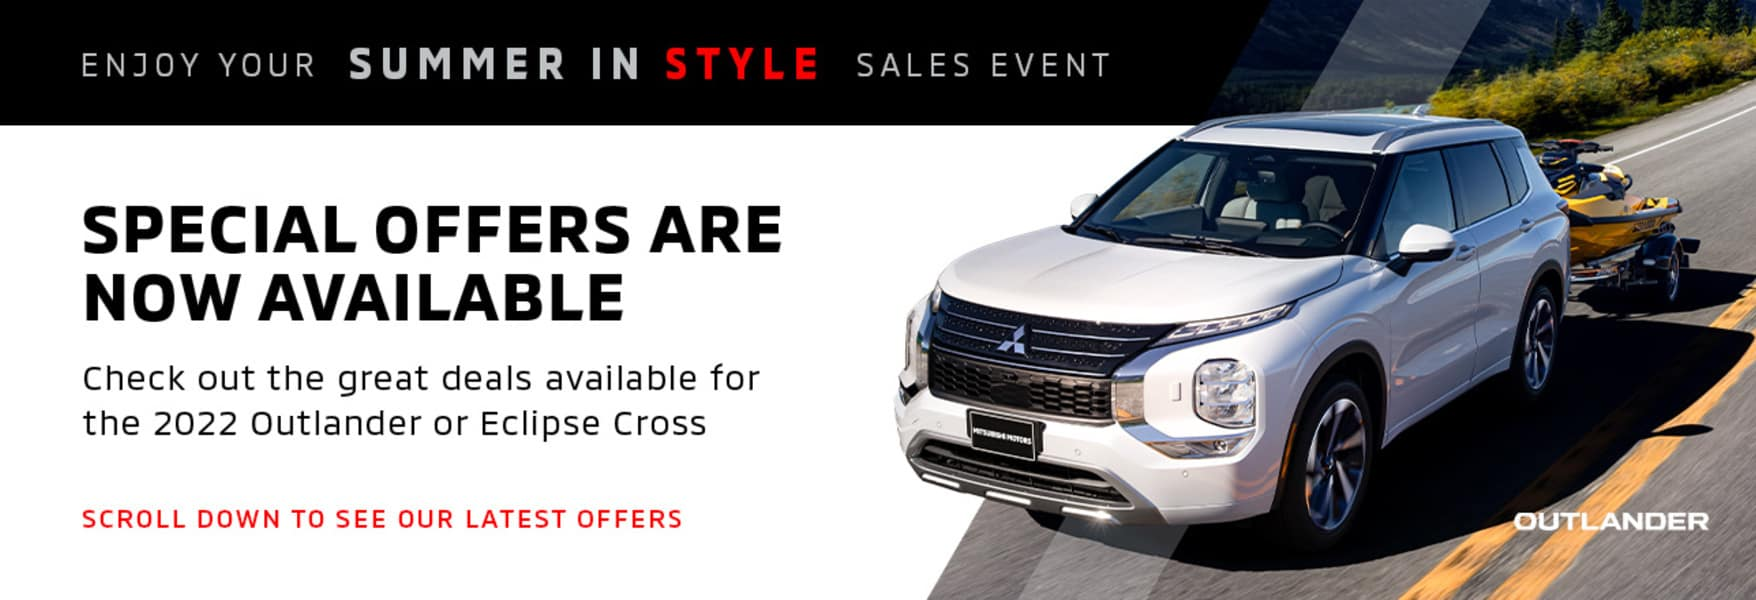 mitsubishi-summer-sales-event-banner-special-offers-d (2)